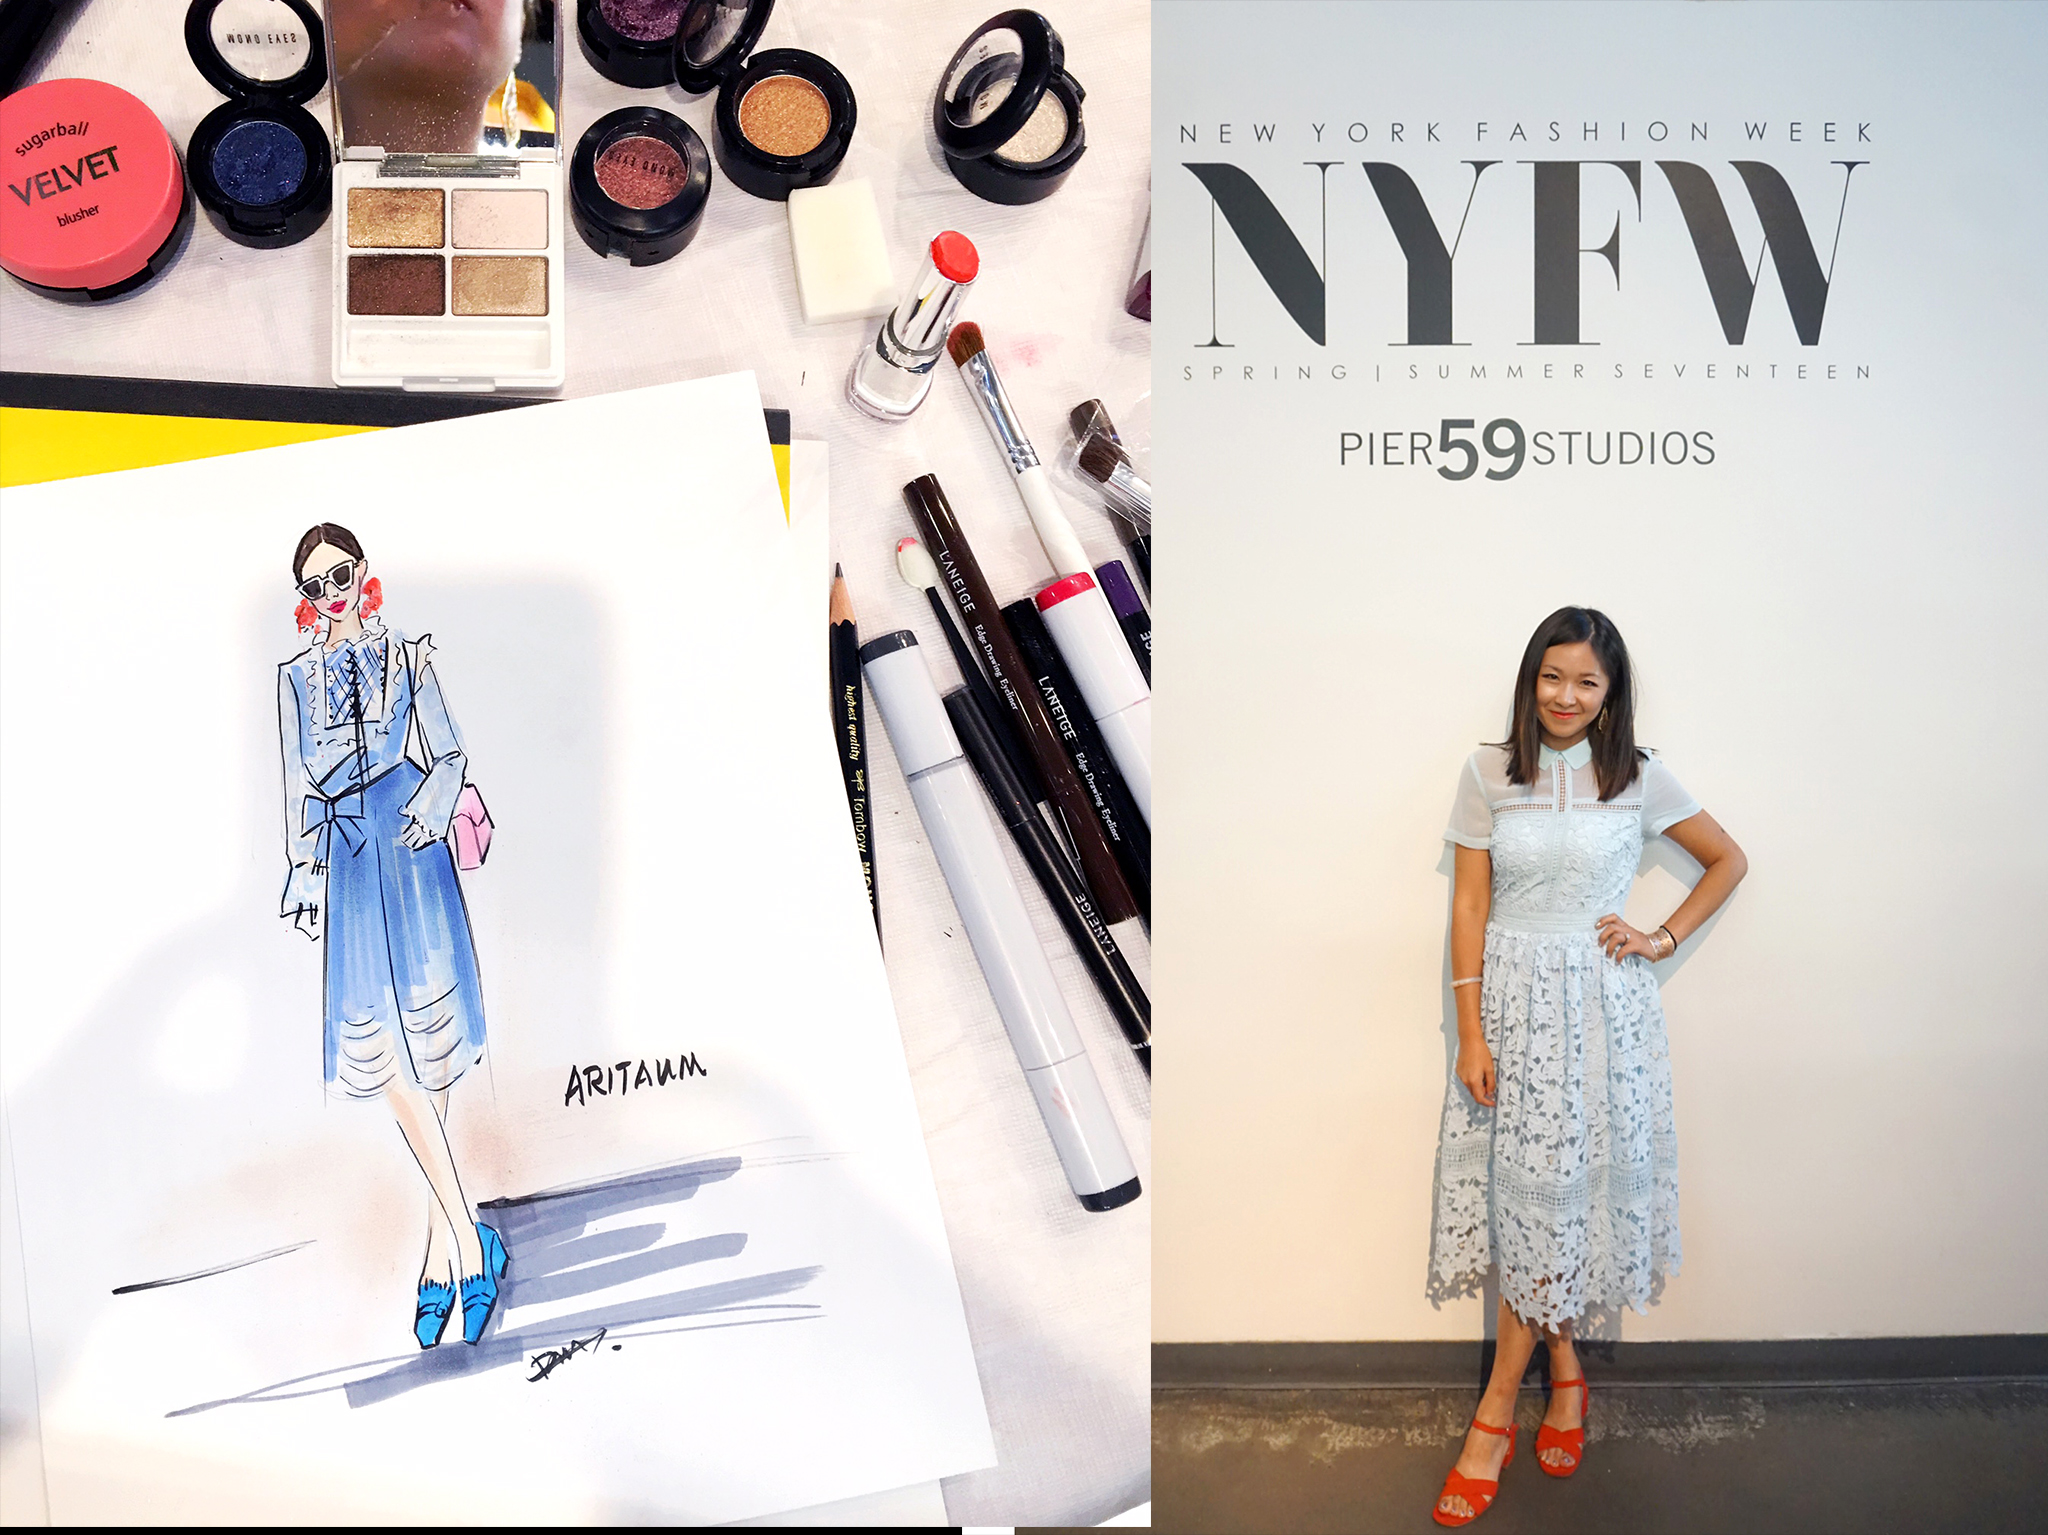 Beauty and fashion illustrator Rongrong DeVoe live sketch at NYFW blogger parties.jpg